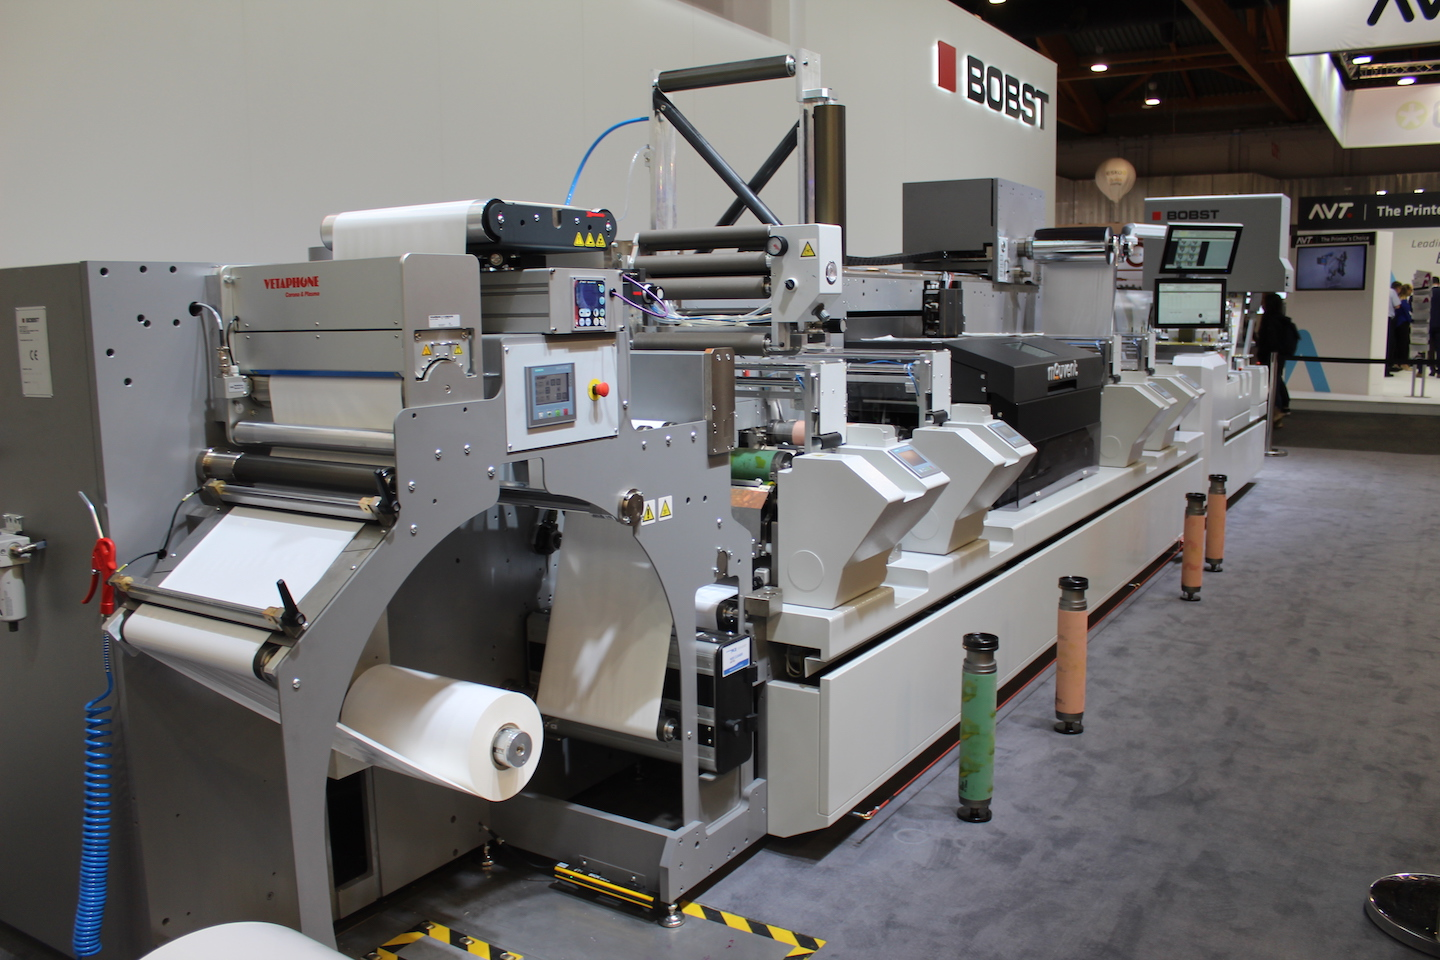 Master DM5 at Bobst - a hybrid solution with Mouvent inkjet unit